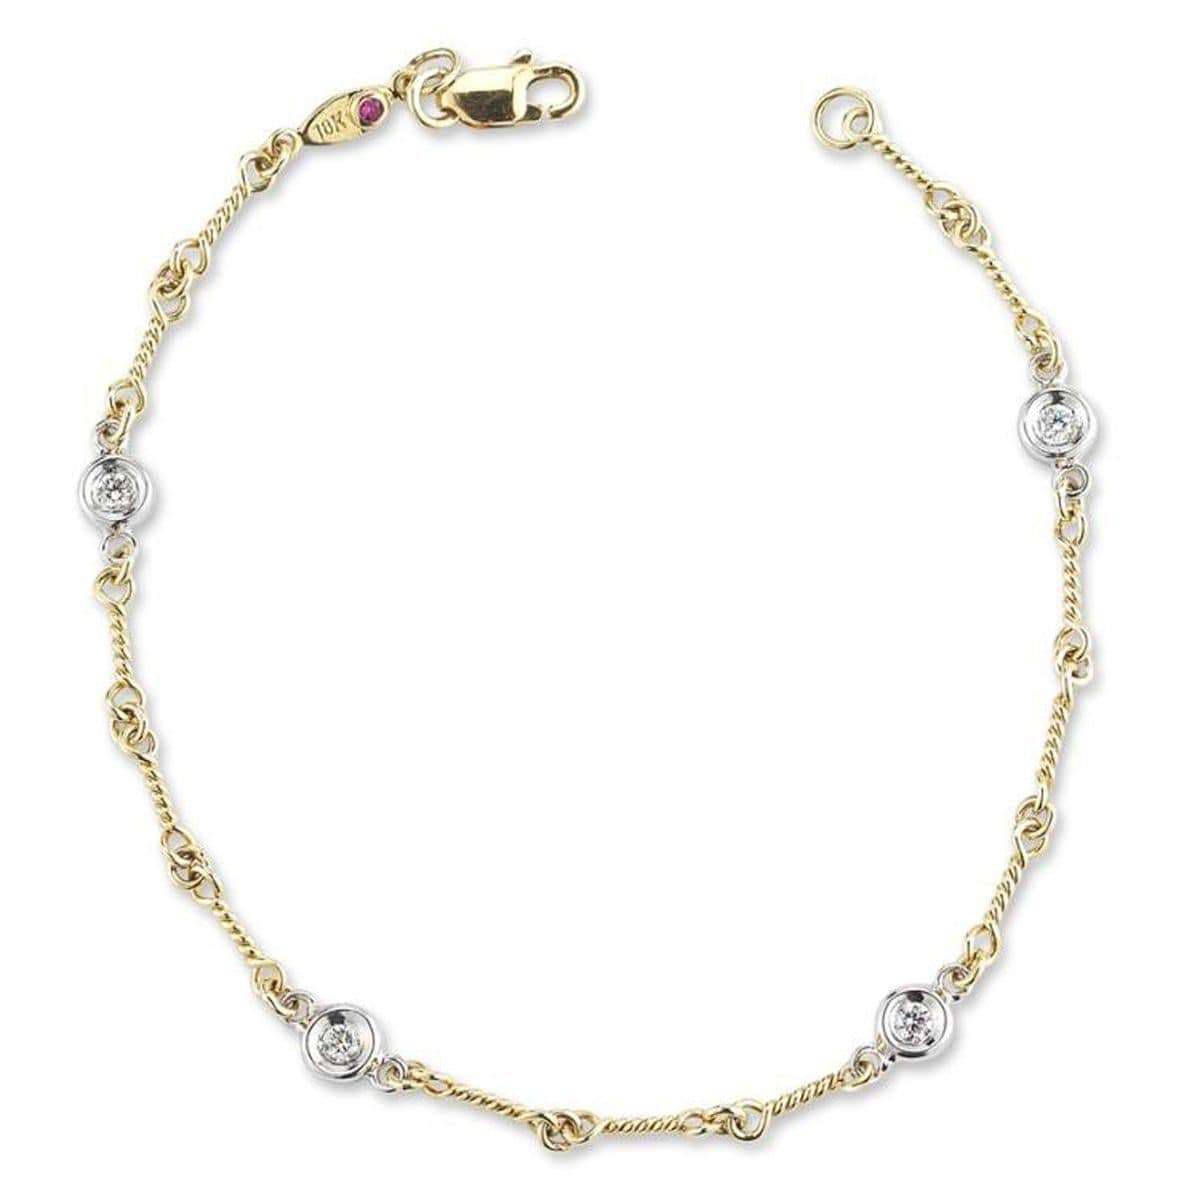 18k Yellow Gold & Diamond Bracelet - 001824AJLBX0